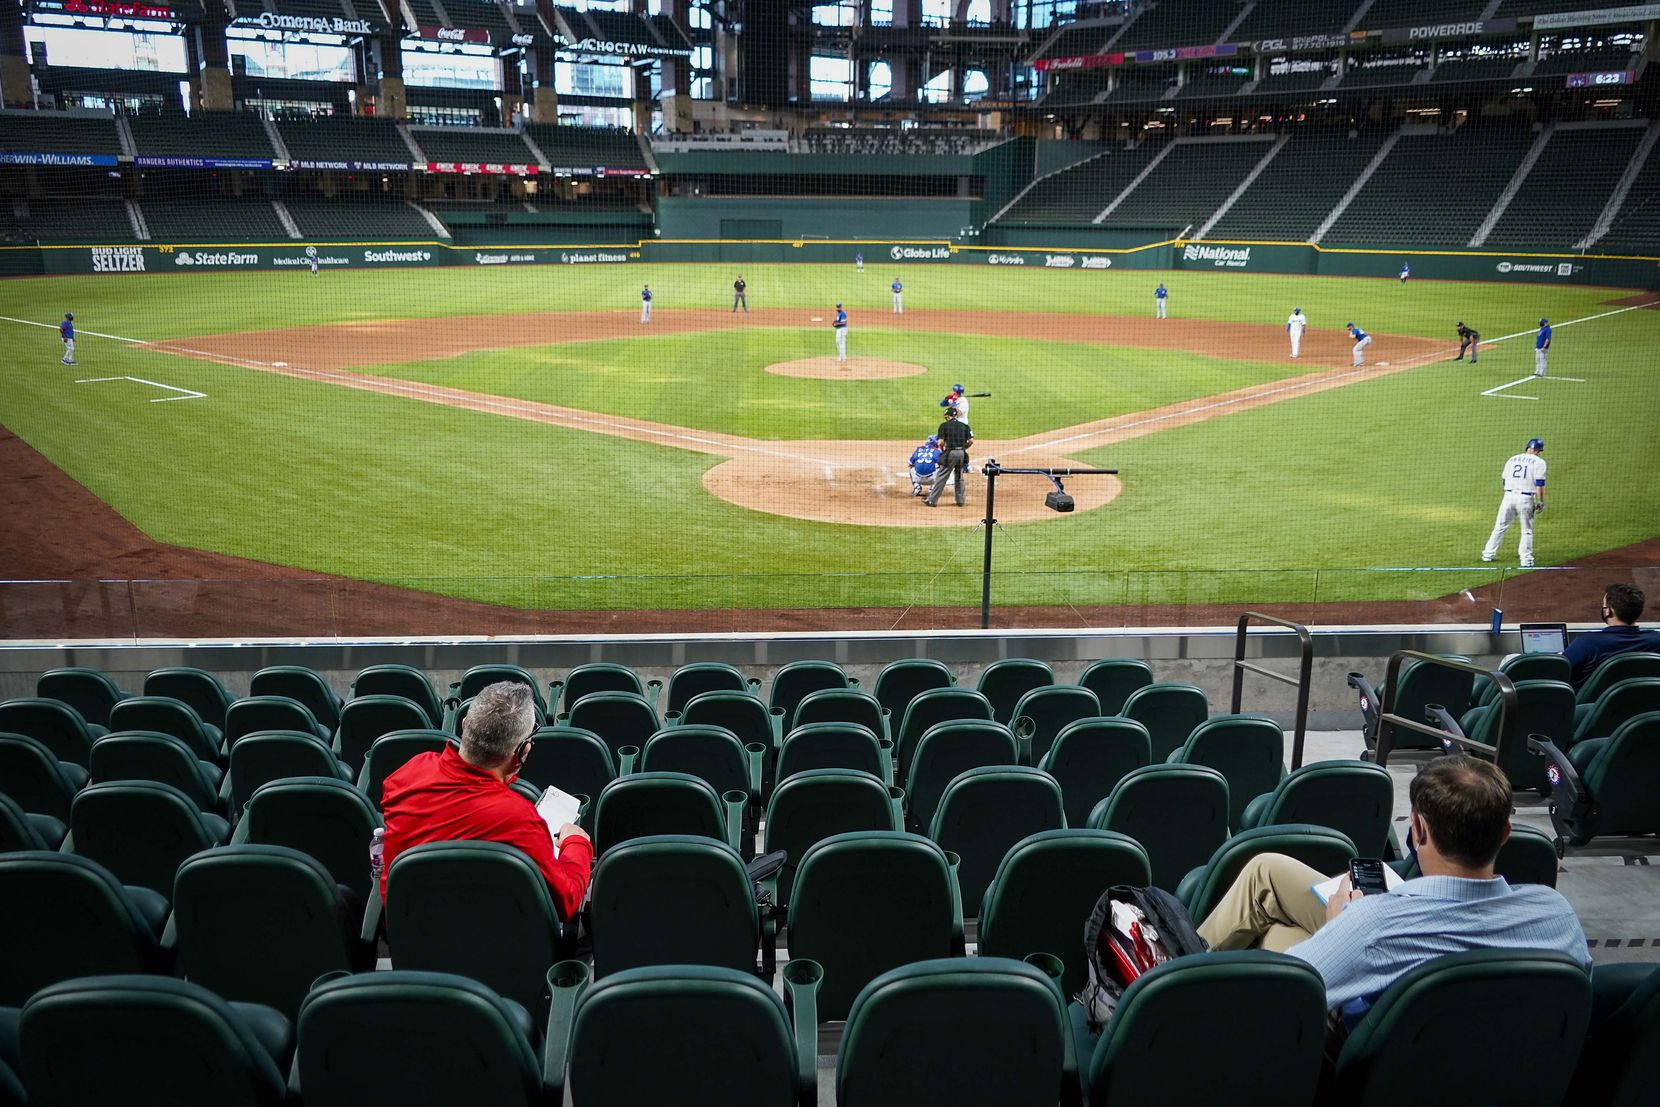 Scouts, including Senior Director of Amateur Scouting Kip Fagg (left) watch an intrasquad game during Texas Rangers Summer Camp at Globe Life Field on Thursday, July 16, 2020.